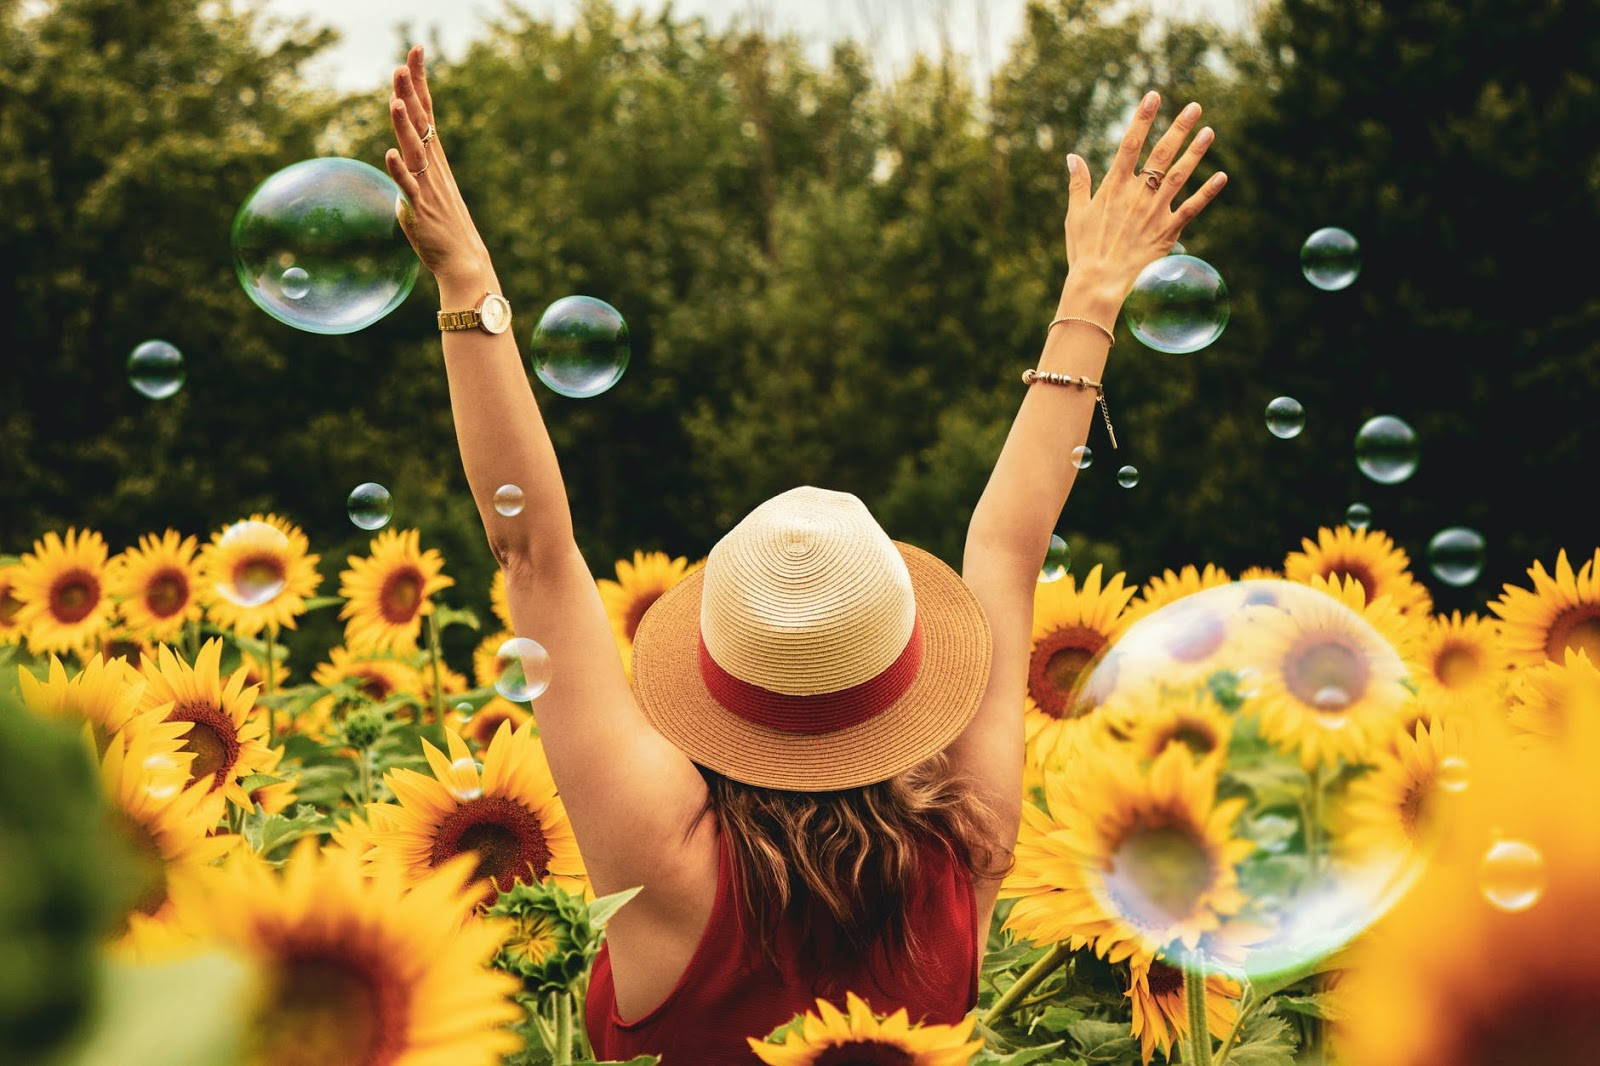 Woman standing in a field on sunflowers with hands in the air.